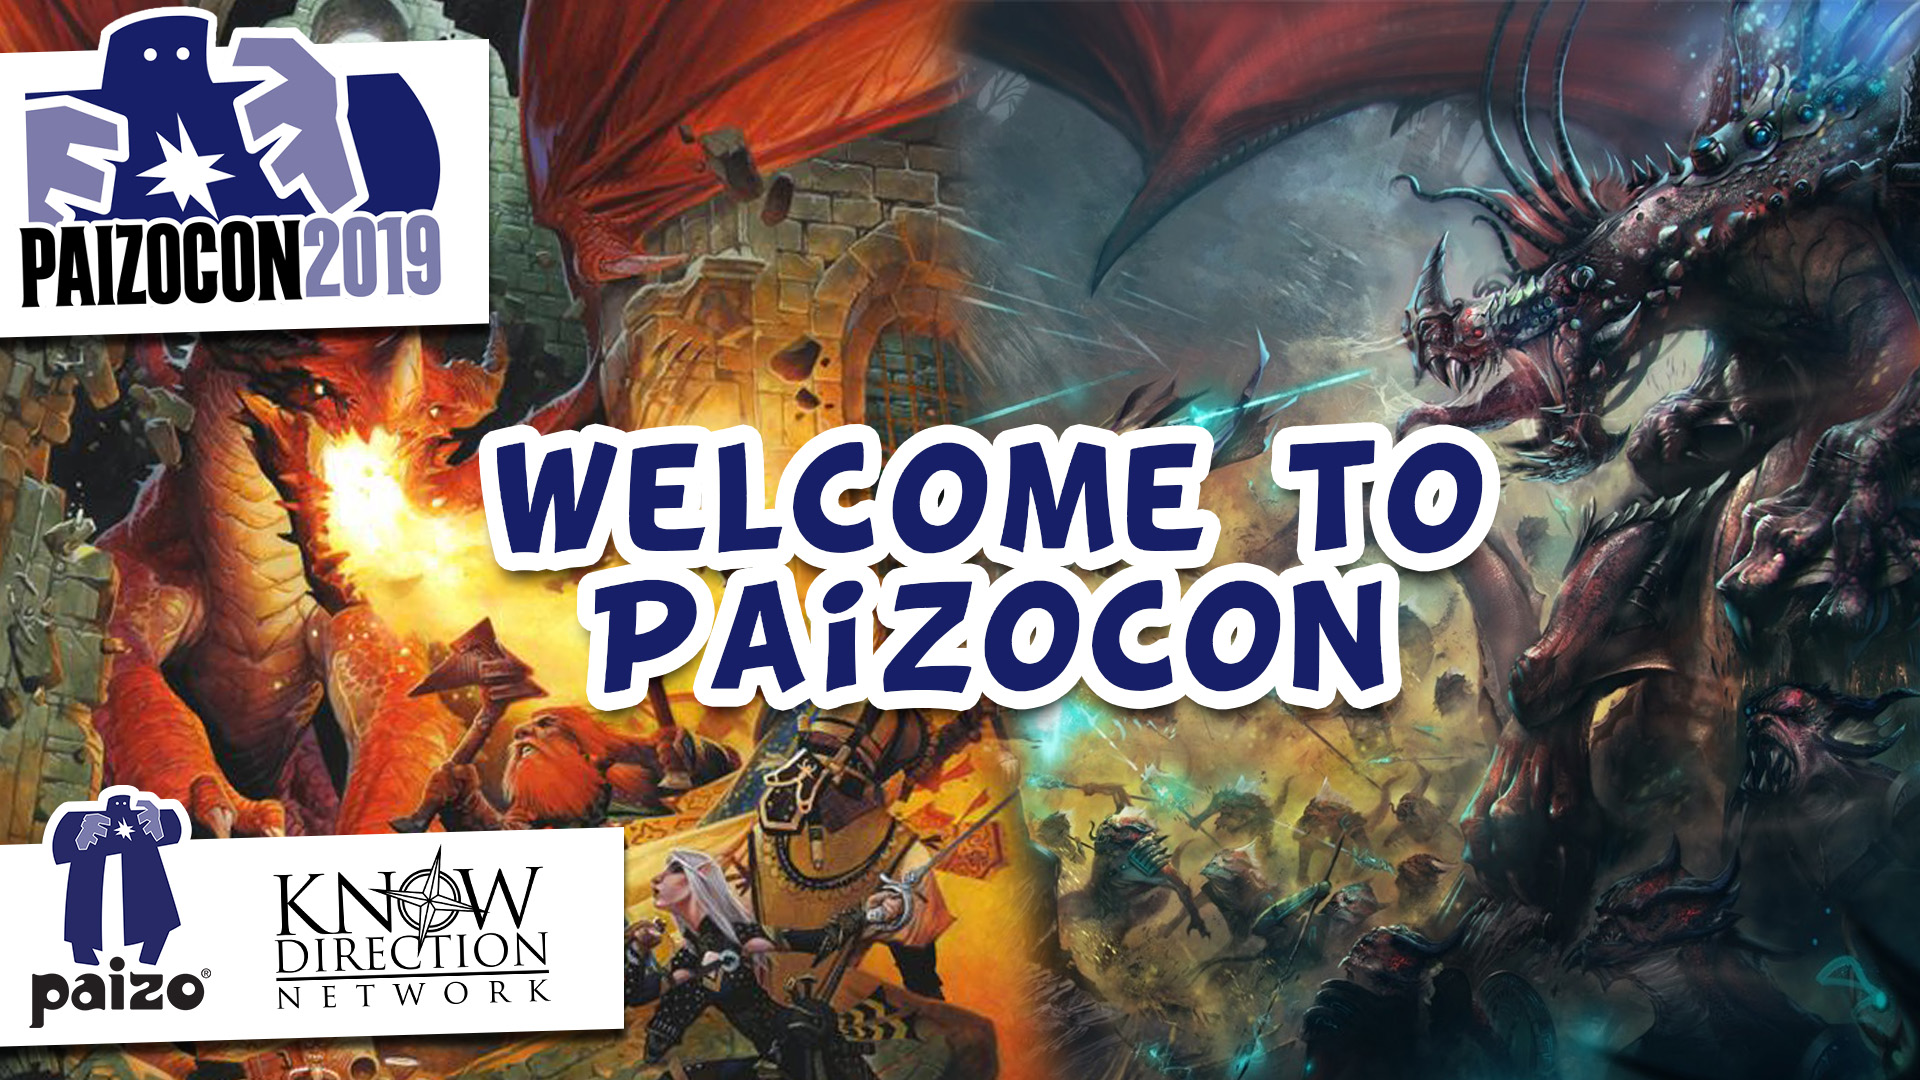 PaizoCon 2019 - Welcome to PaizoCon